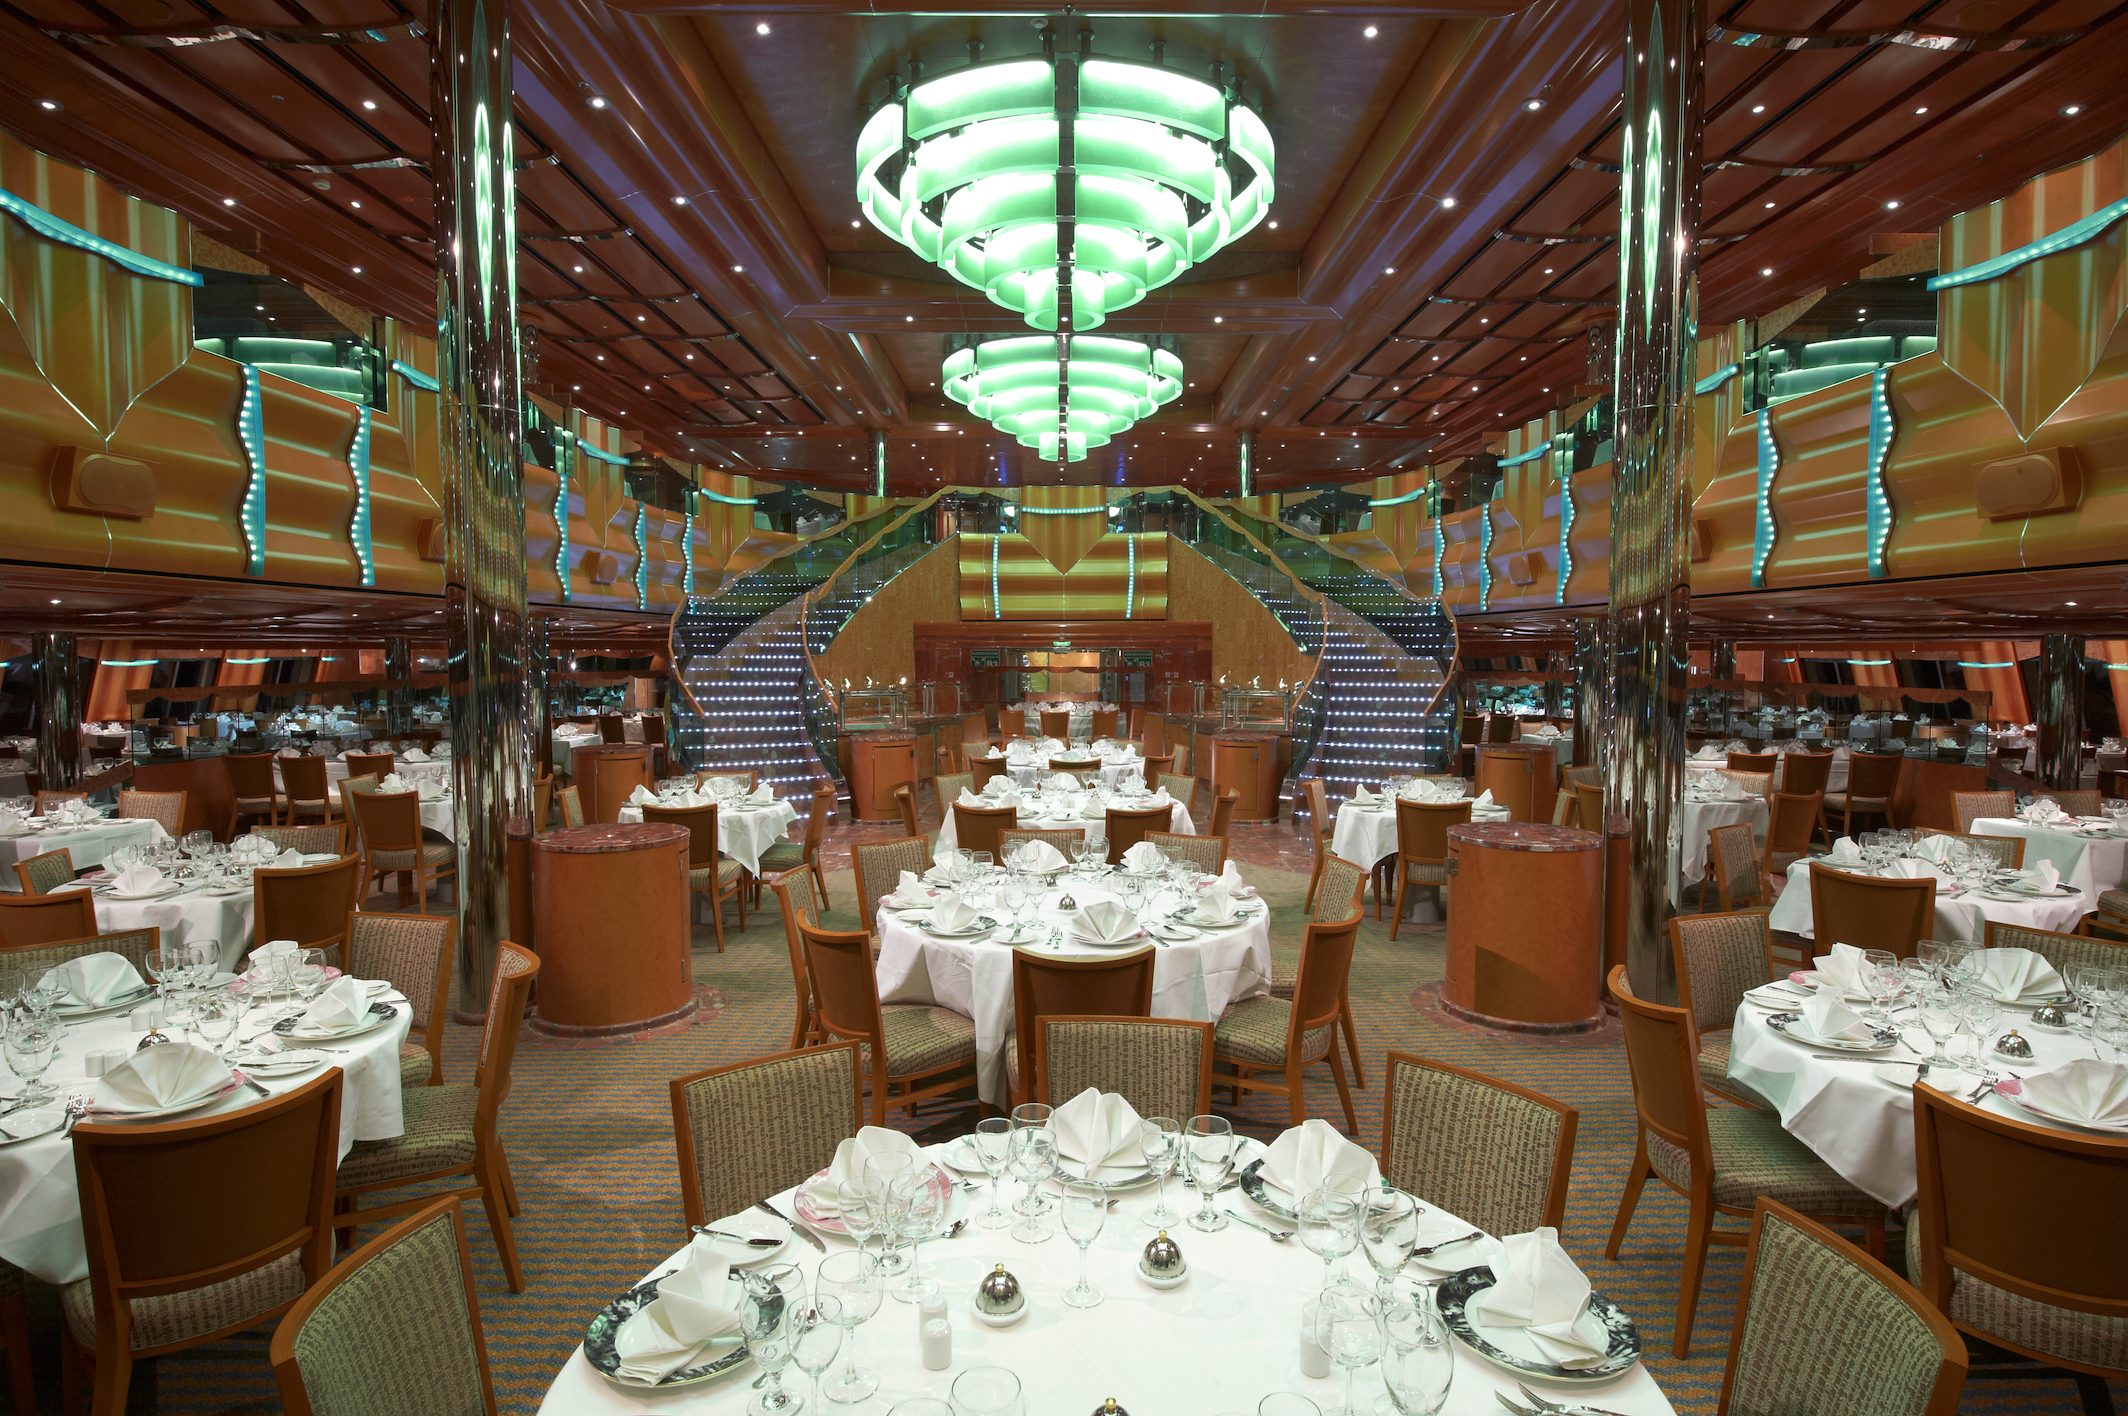 Lovely Carnival Magic Dining Room Menu 2016 Light of  : CarnivalMagicNorthernLightsRestaurant1 from www.lightofdiningroom.com size 2128 x 1416 jpeg 3178kB